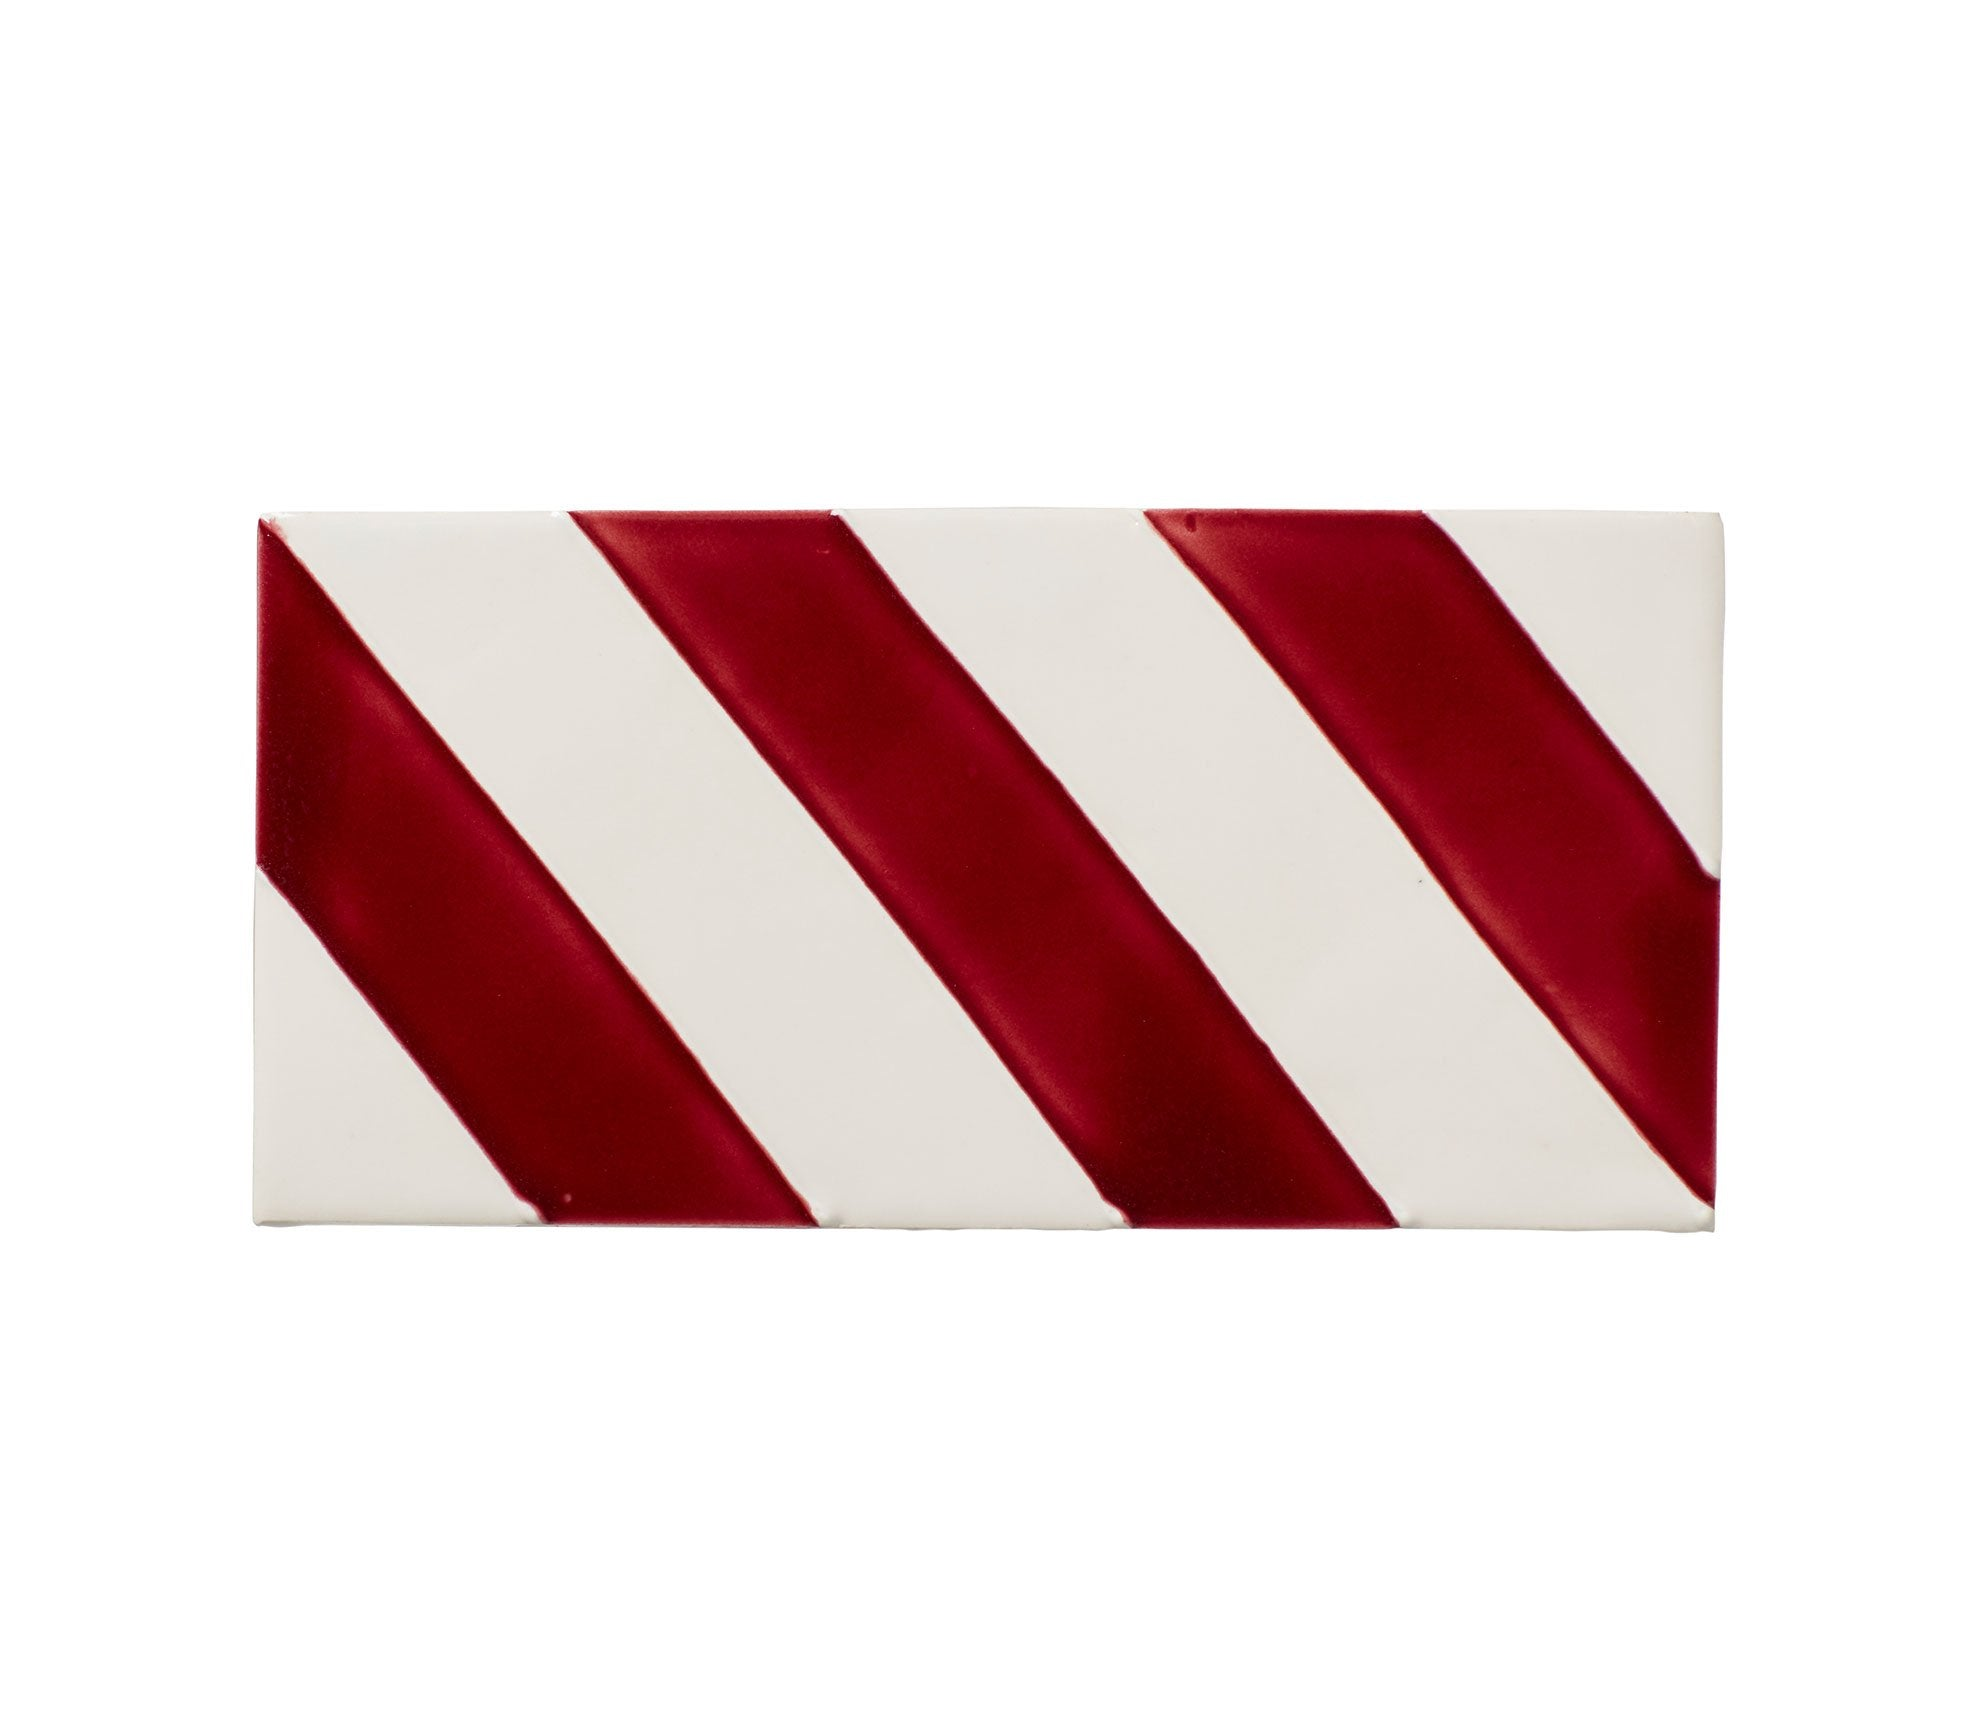 Hanley Tube Lined Decorative Tiles Product Image 16